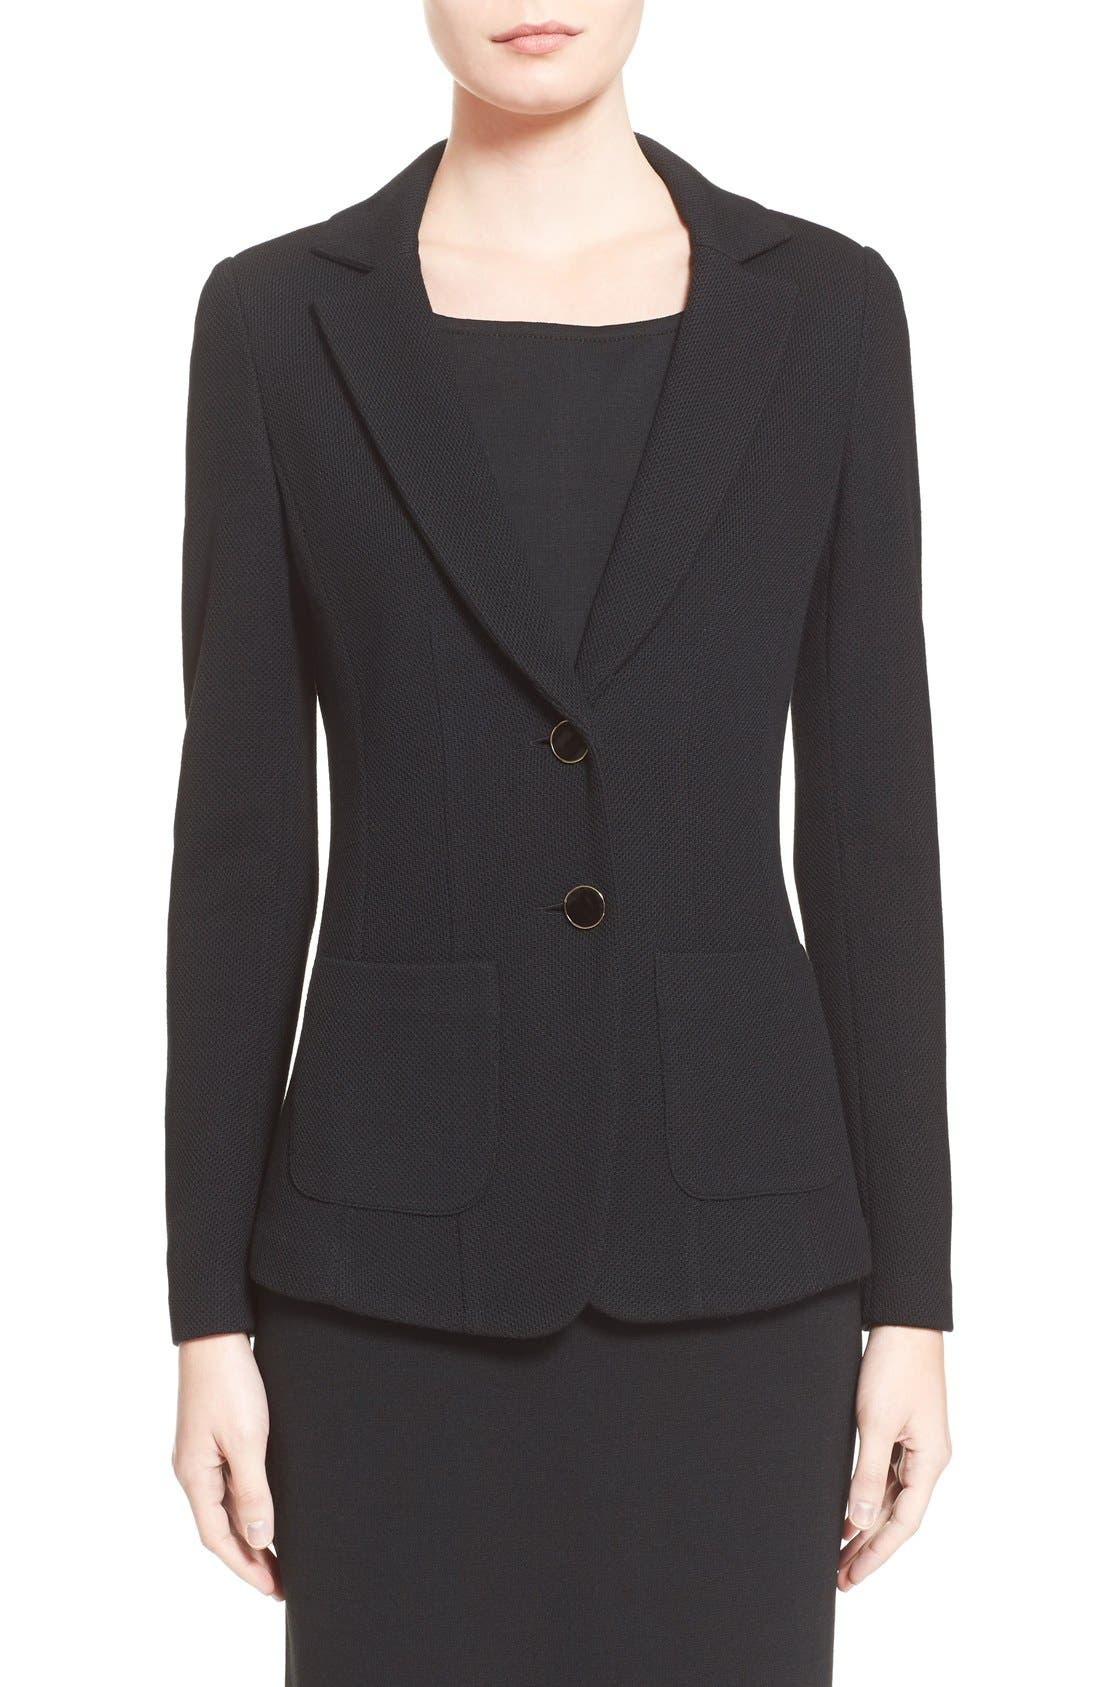 Milano Piqué Knit Jacket,                         Main,                         color, Caviar